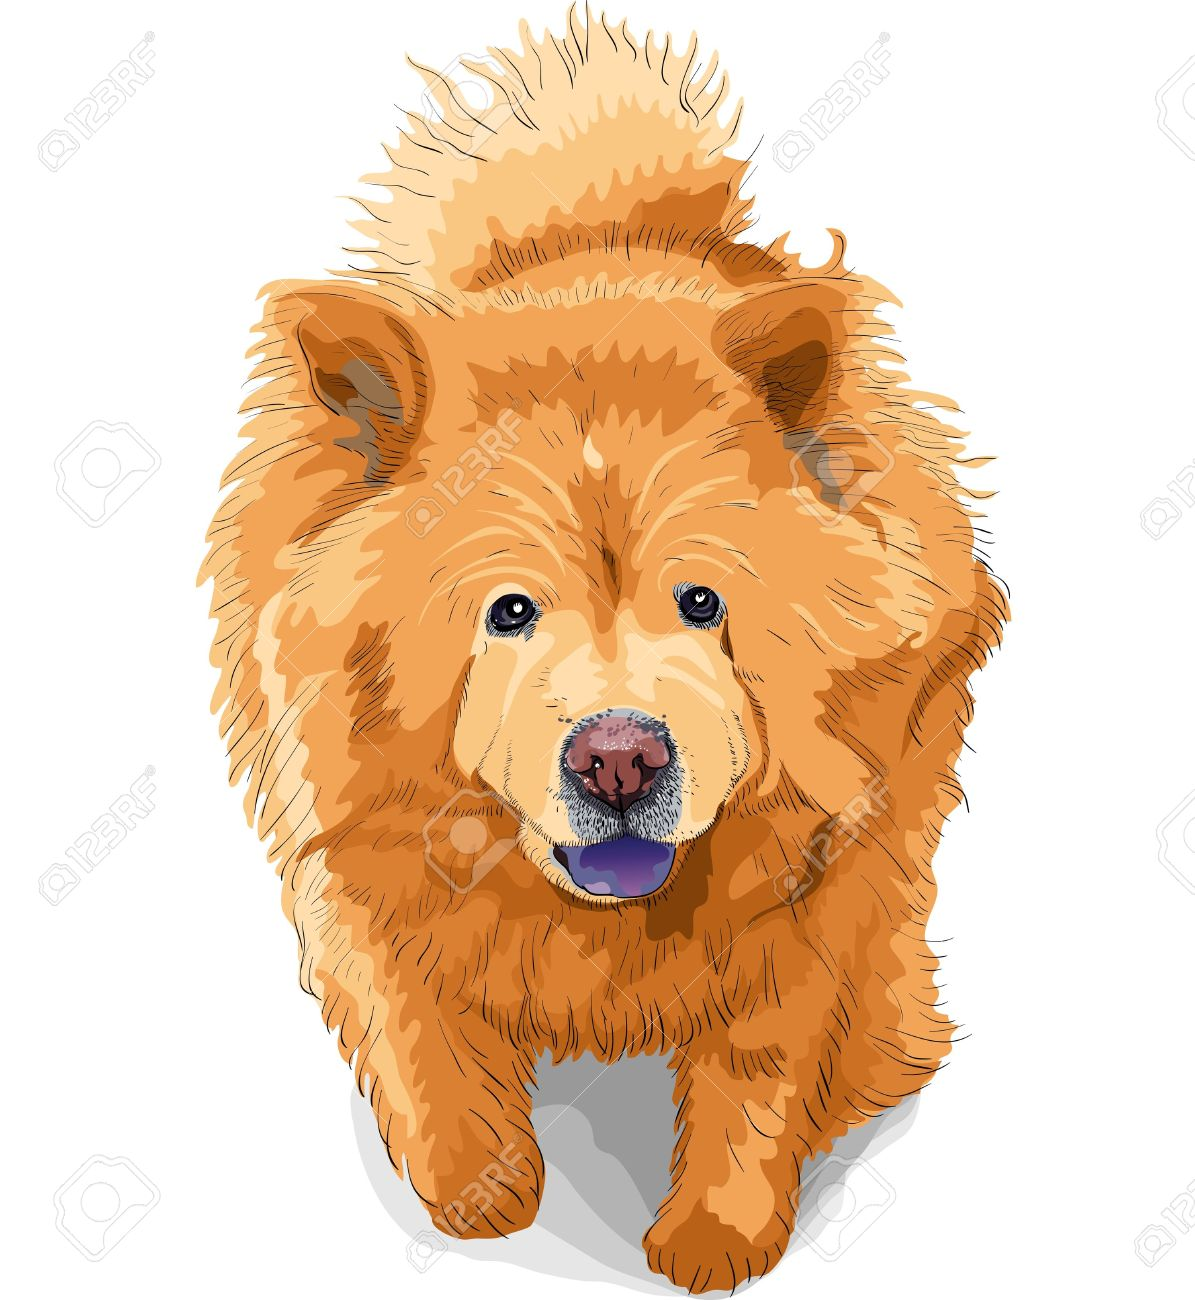 Chow Chow clipart #18, Download drawings